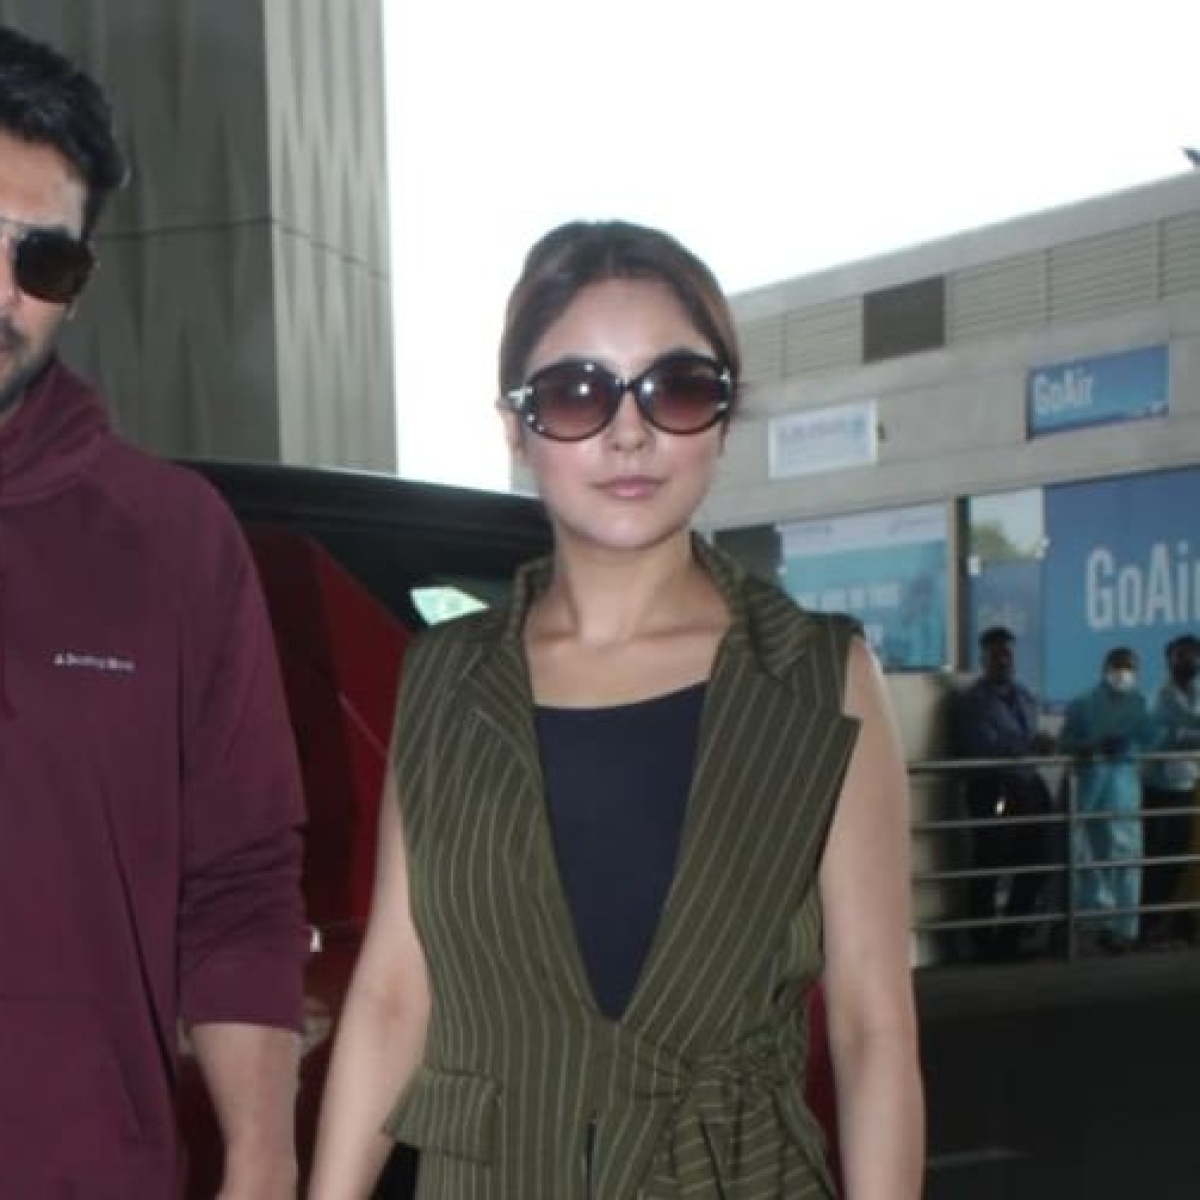 In Pics: 'BB13' couple Sidharth Shukla and Shehnaaz Gill head to Goa to shoot Valentine's Day-themed music video